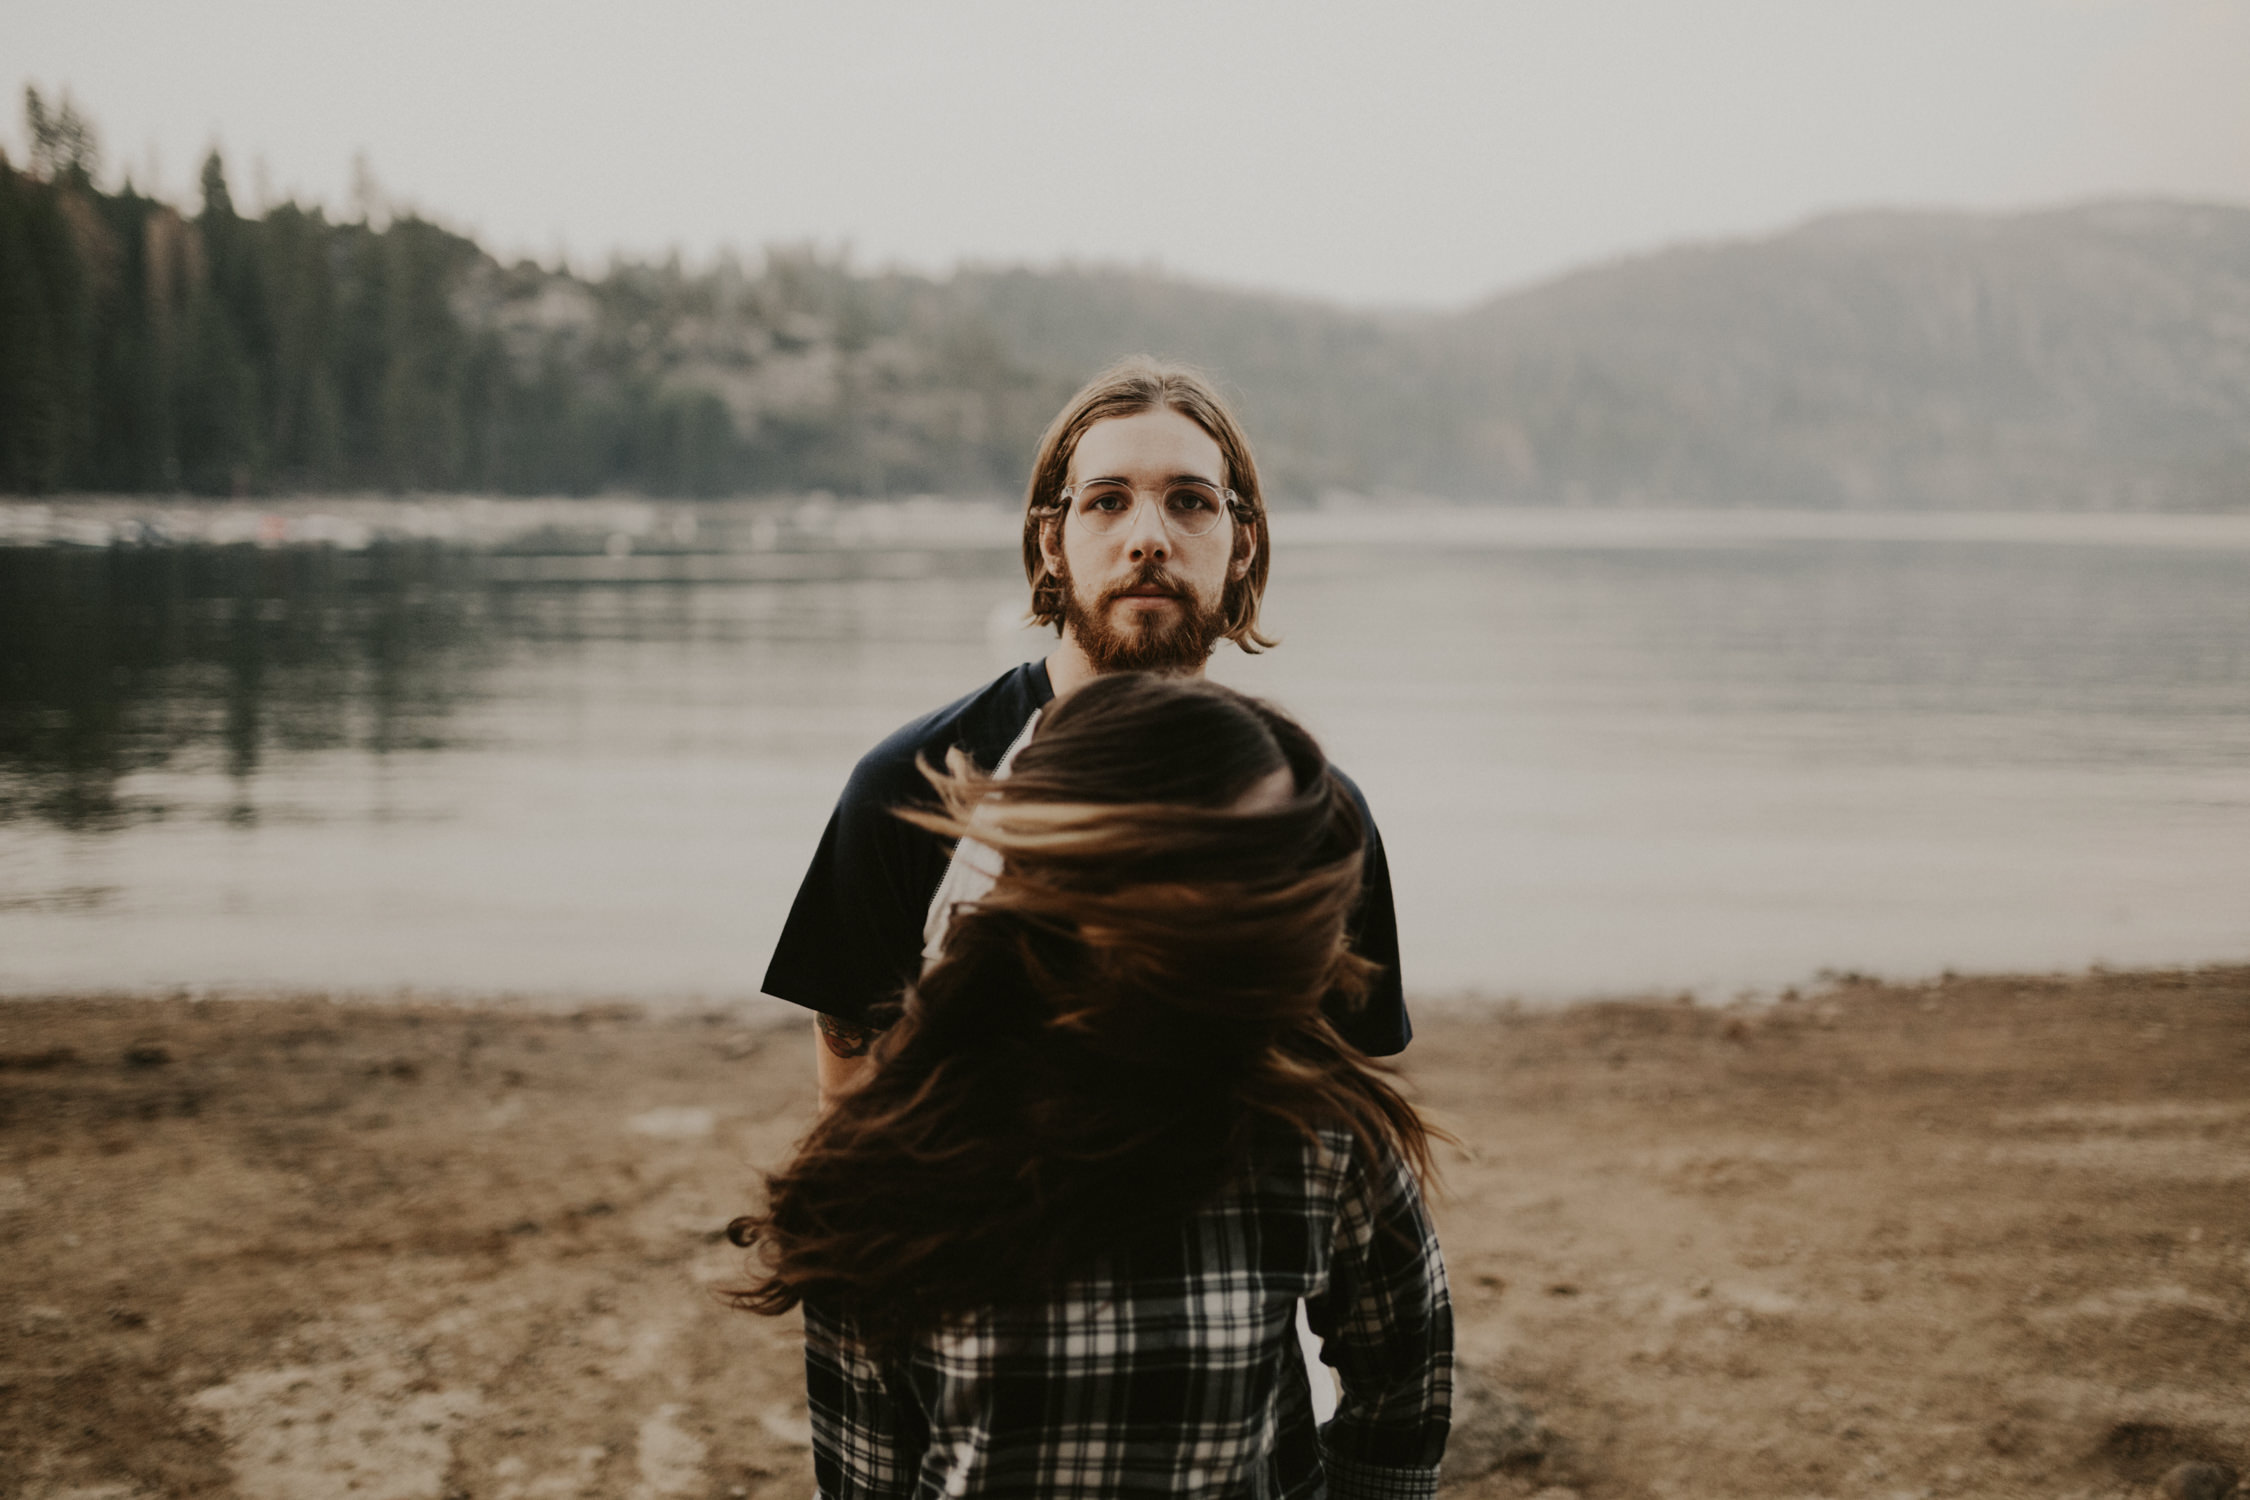 couple-intimate-engagement-session-northern-california-52.jpg